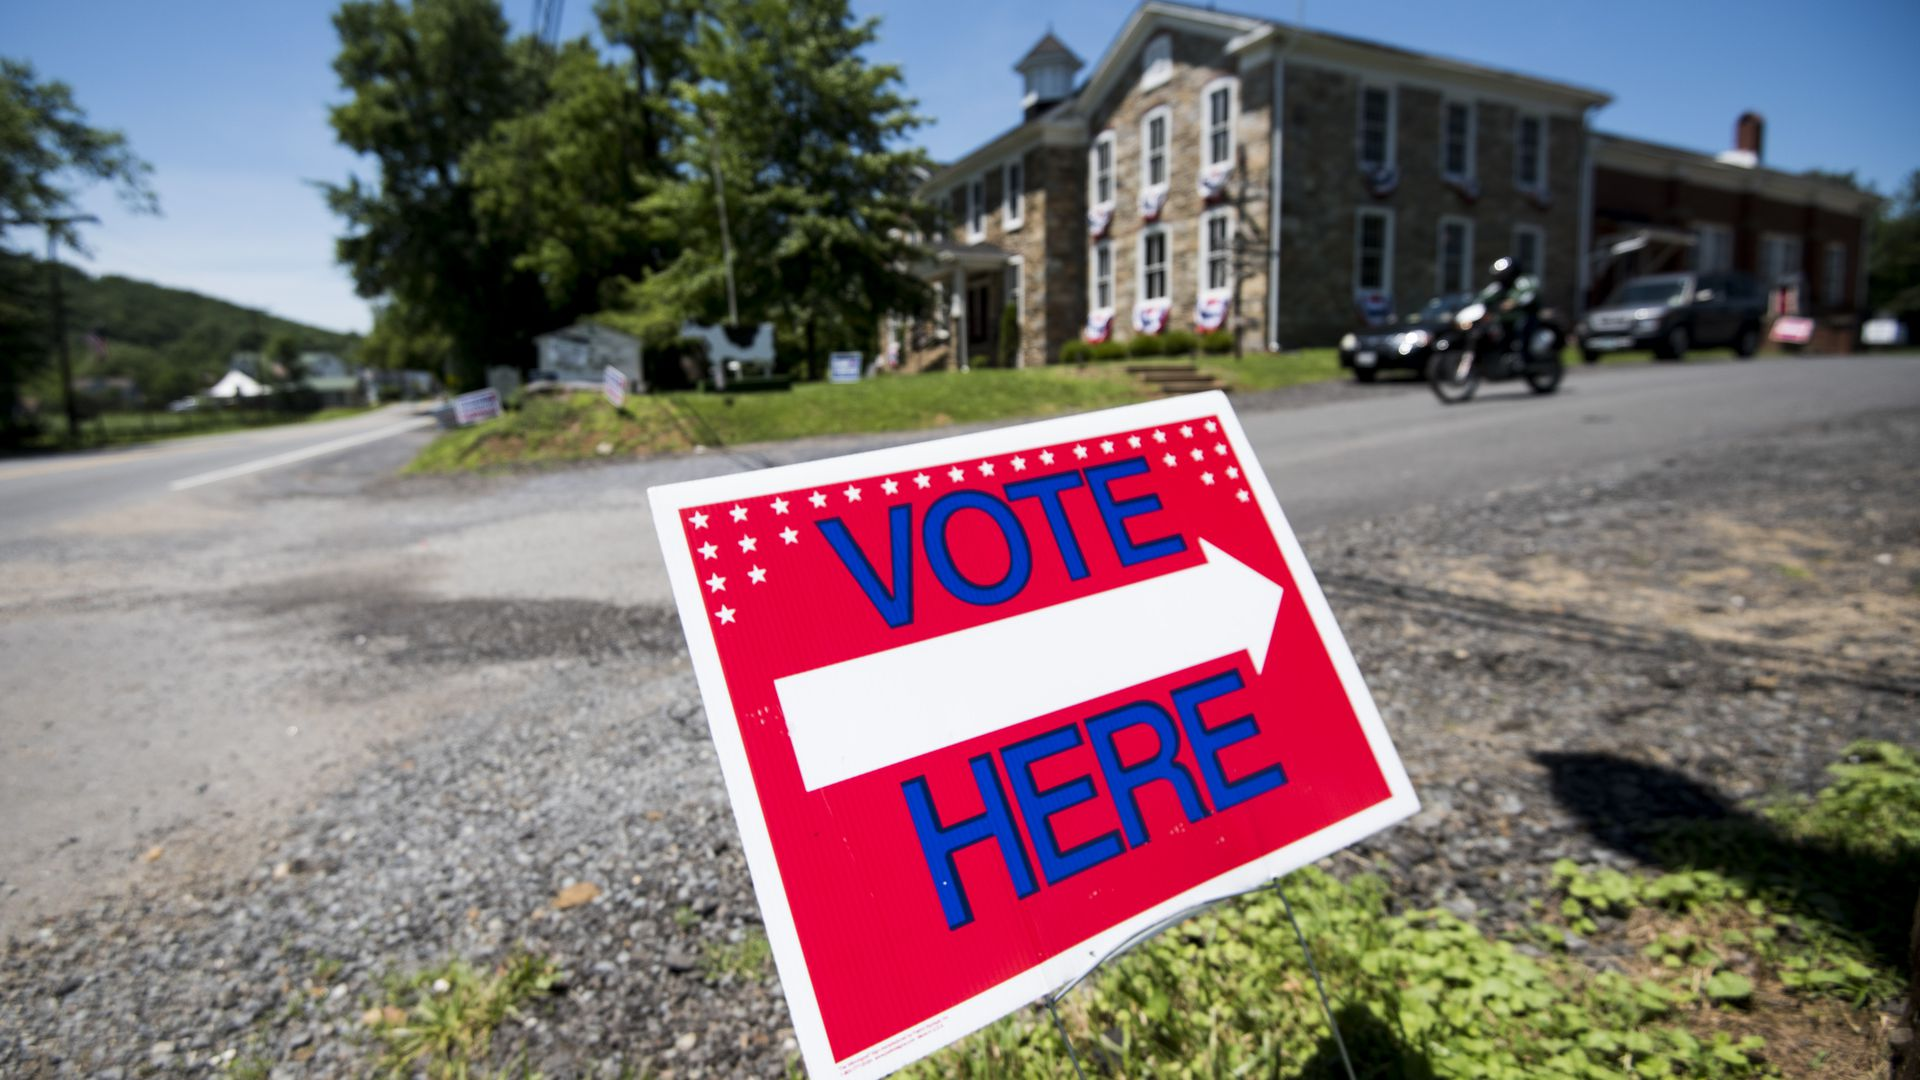 Vote here sign on a lawn pointing to a large building